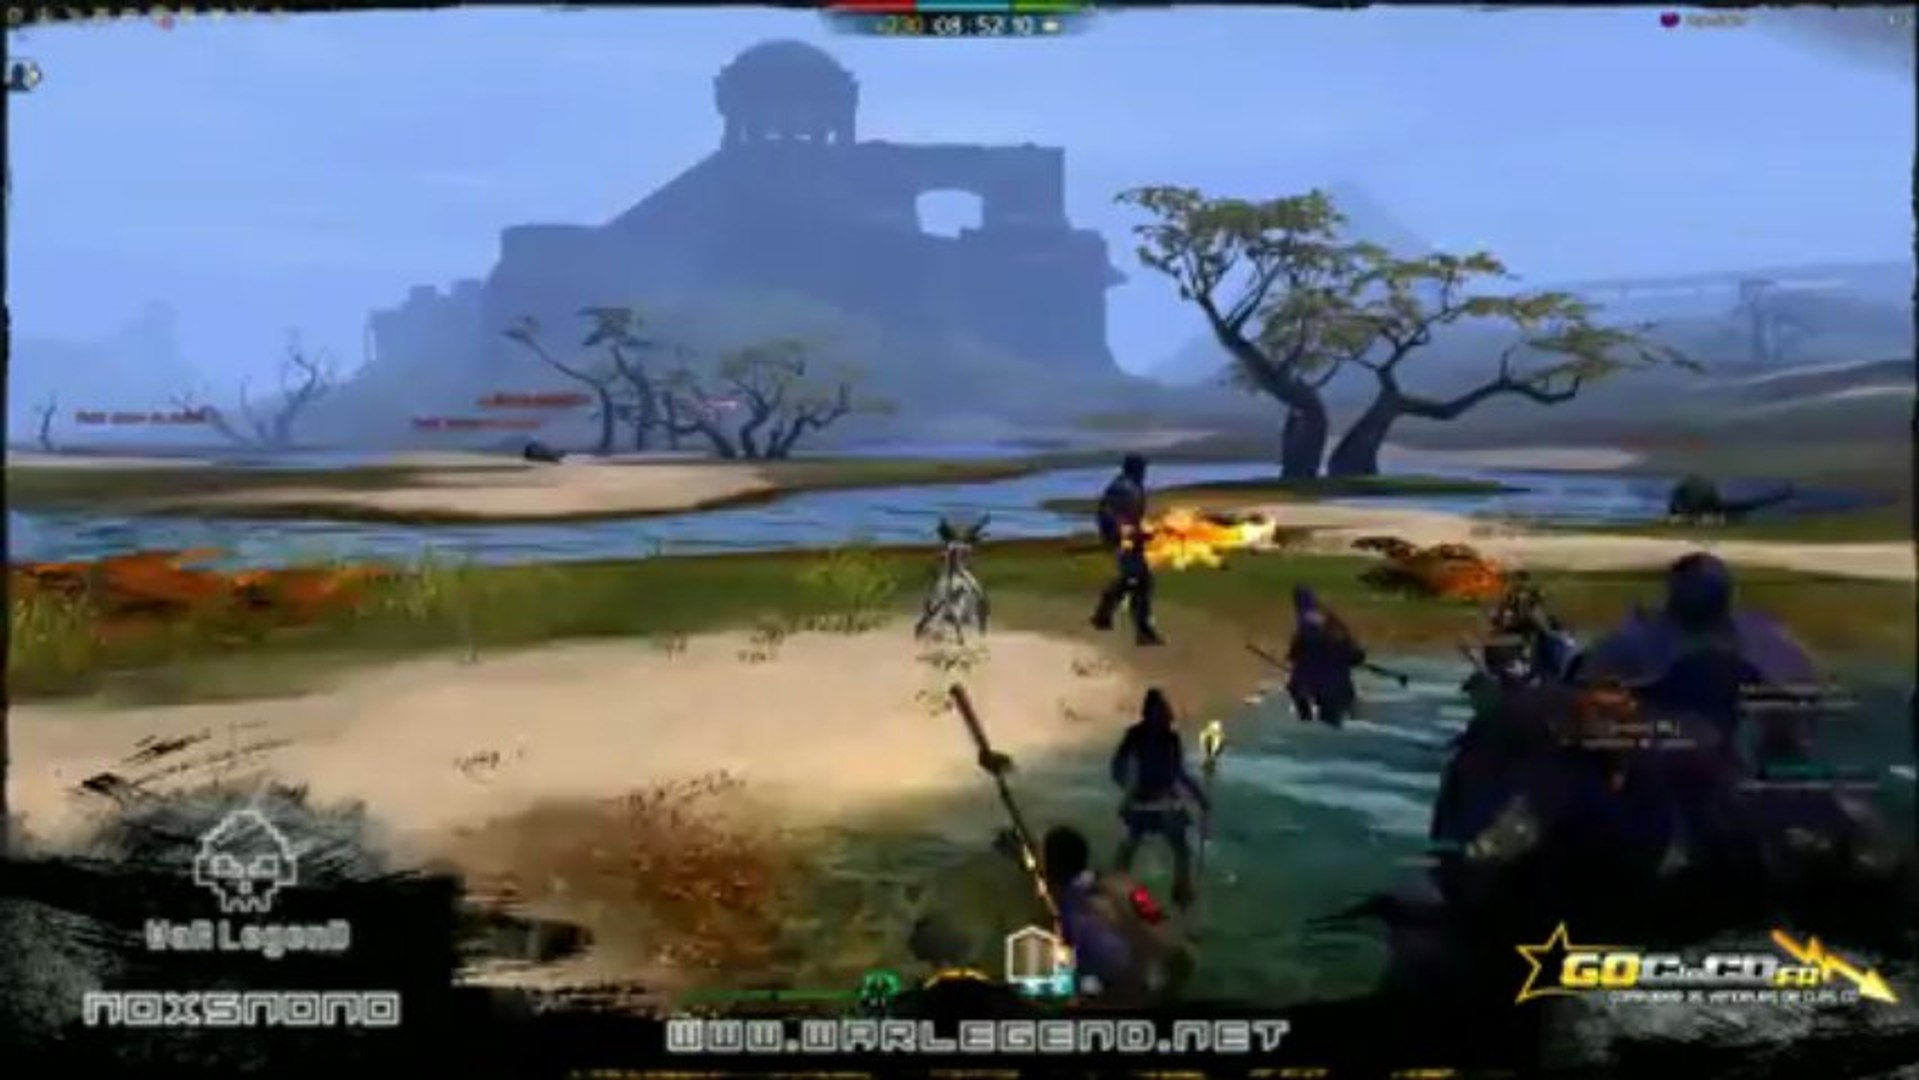 BattleStar WaR LegenD Guild Wars 2 - 31-03-2013